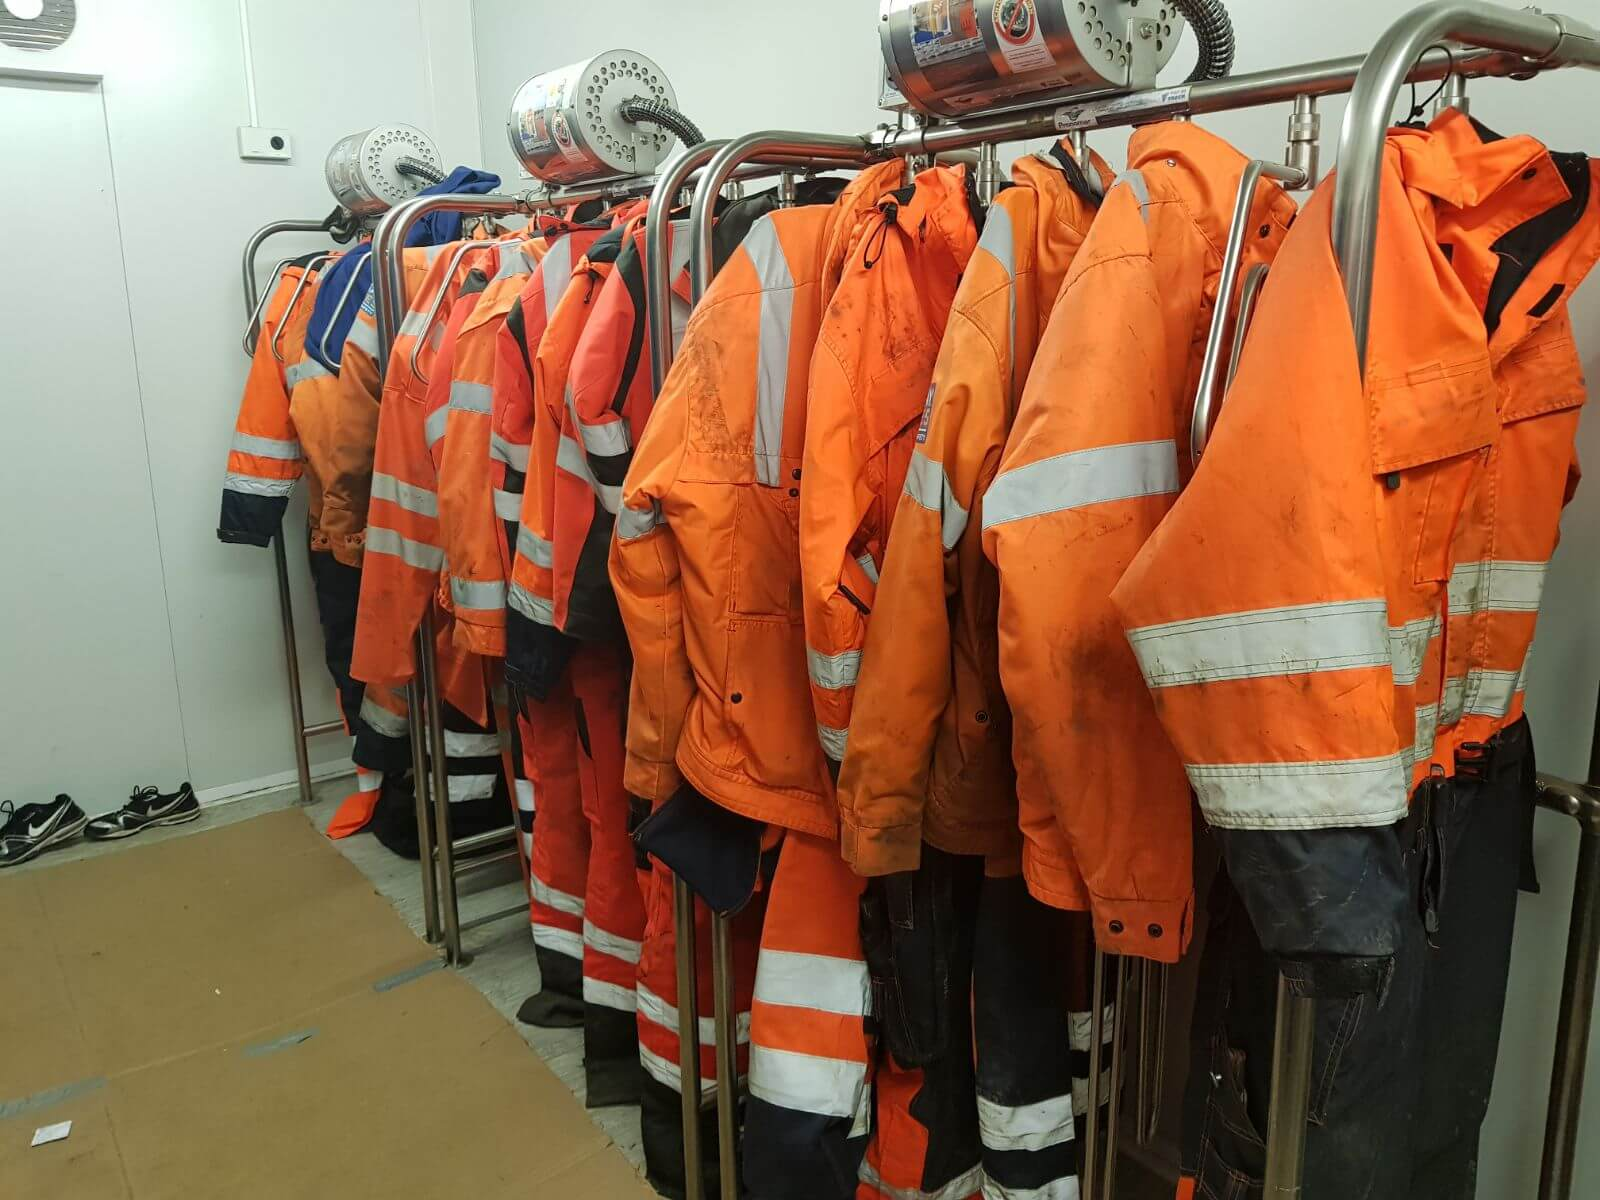 drying room equipment for heavy survival suits